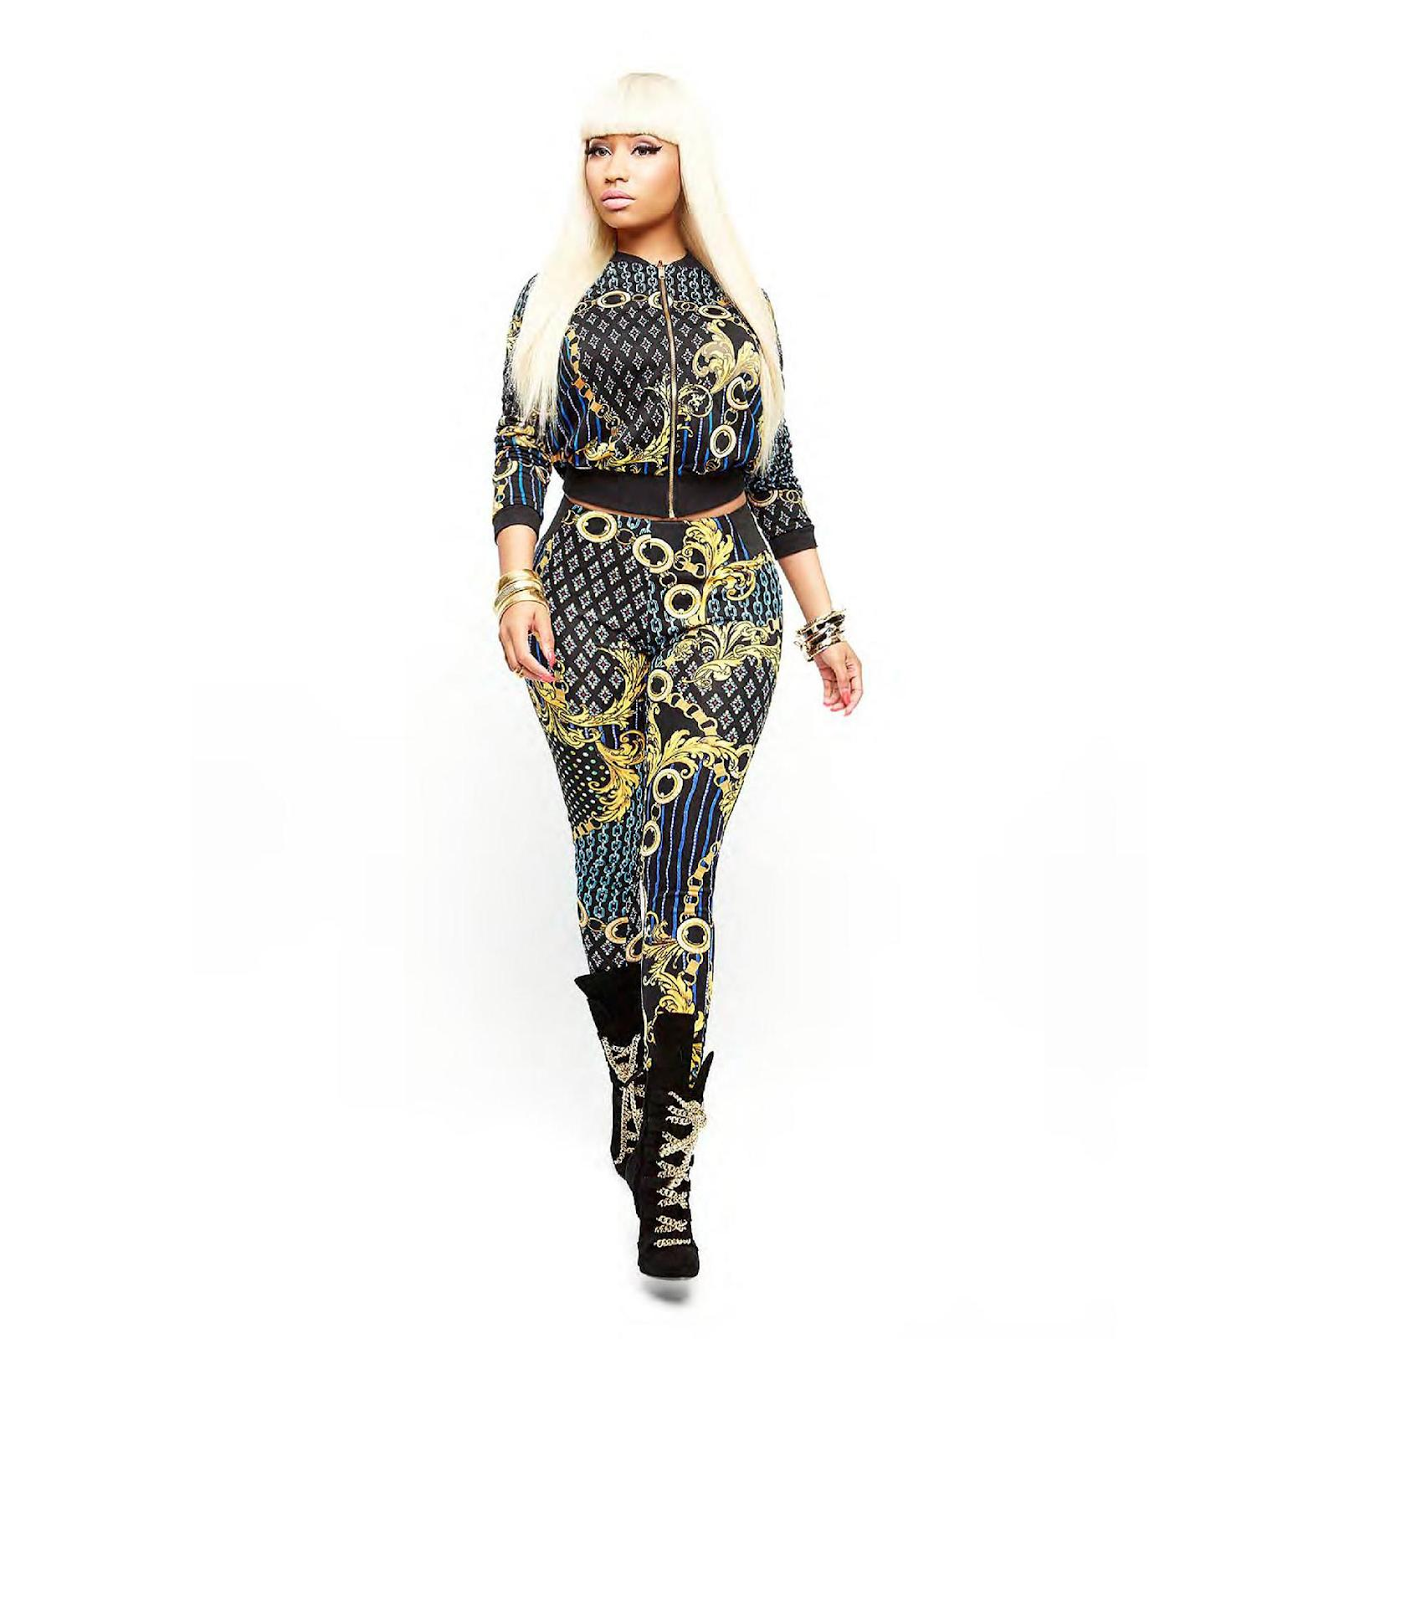 Oh no they didn't! Kmart may have started up some bad blood with Nicki Minaj, as they announced on Feb. 25 they are dropping the 'Anaconda' singer's clothing line because, well, it wasn't selling.